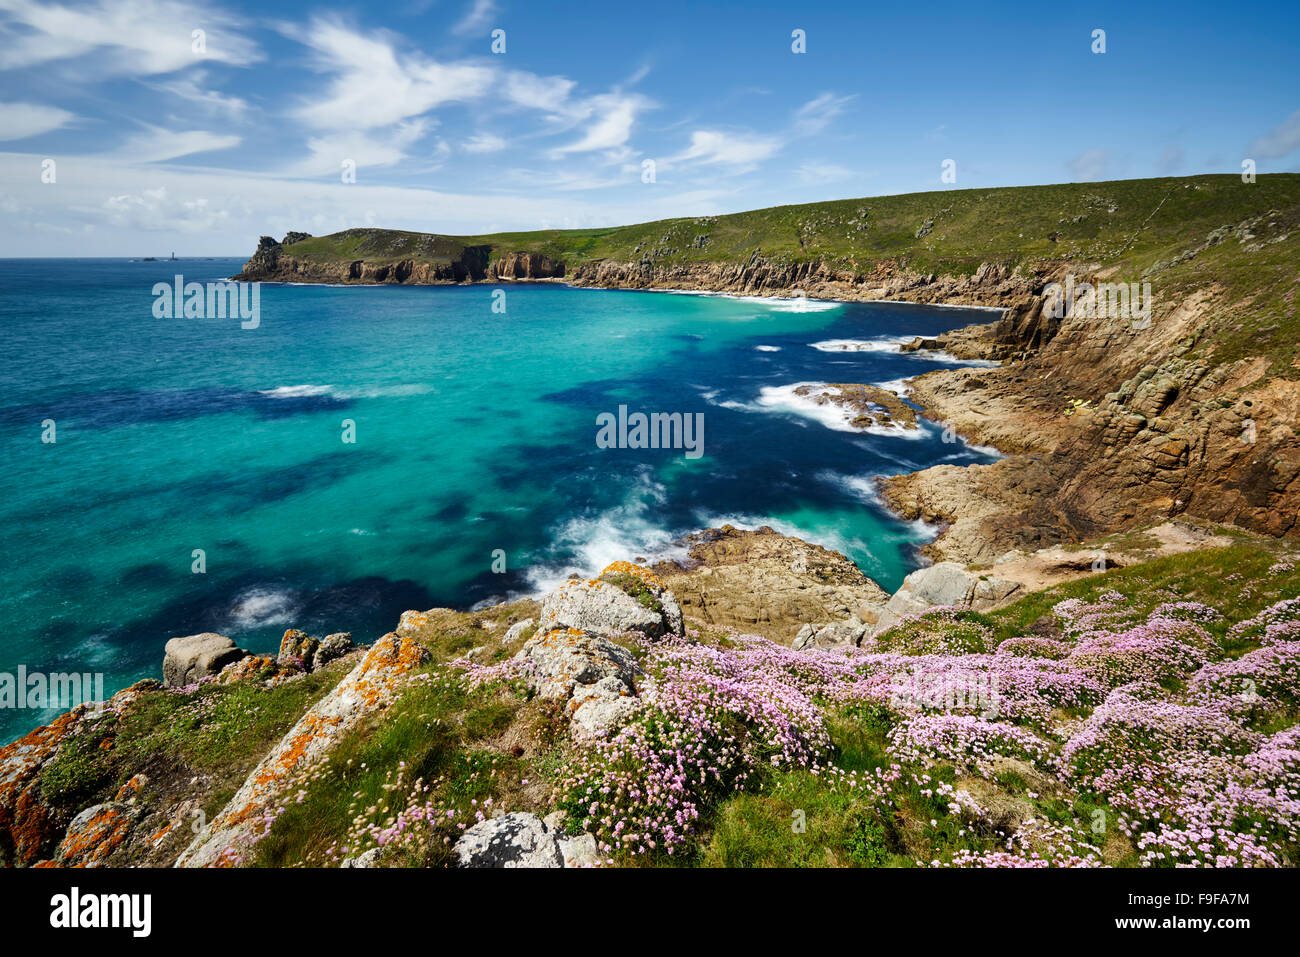 Sea Thrift growing on the clifftop at Nanjizal, Cornwall - Stock Image